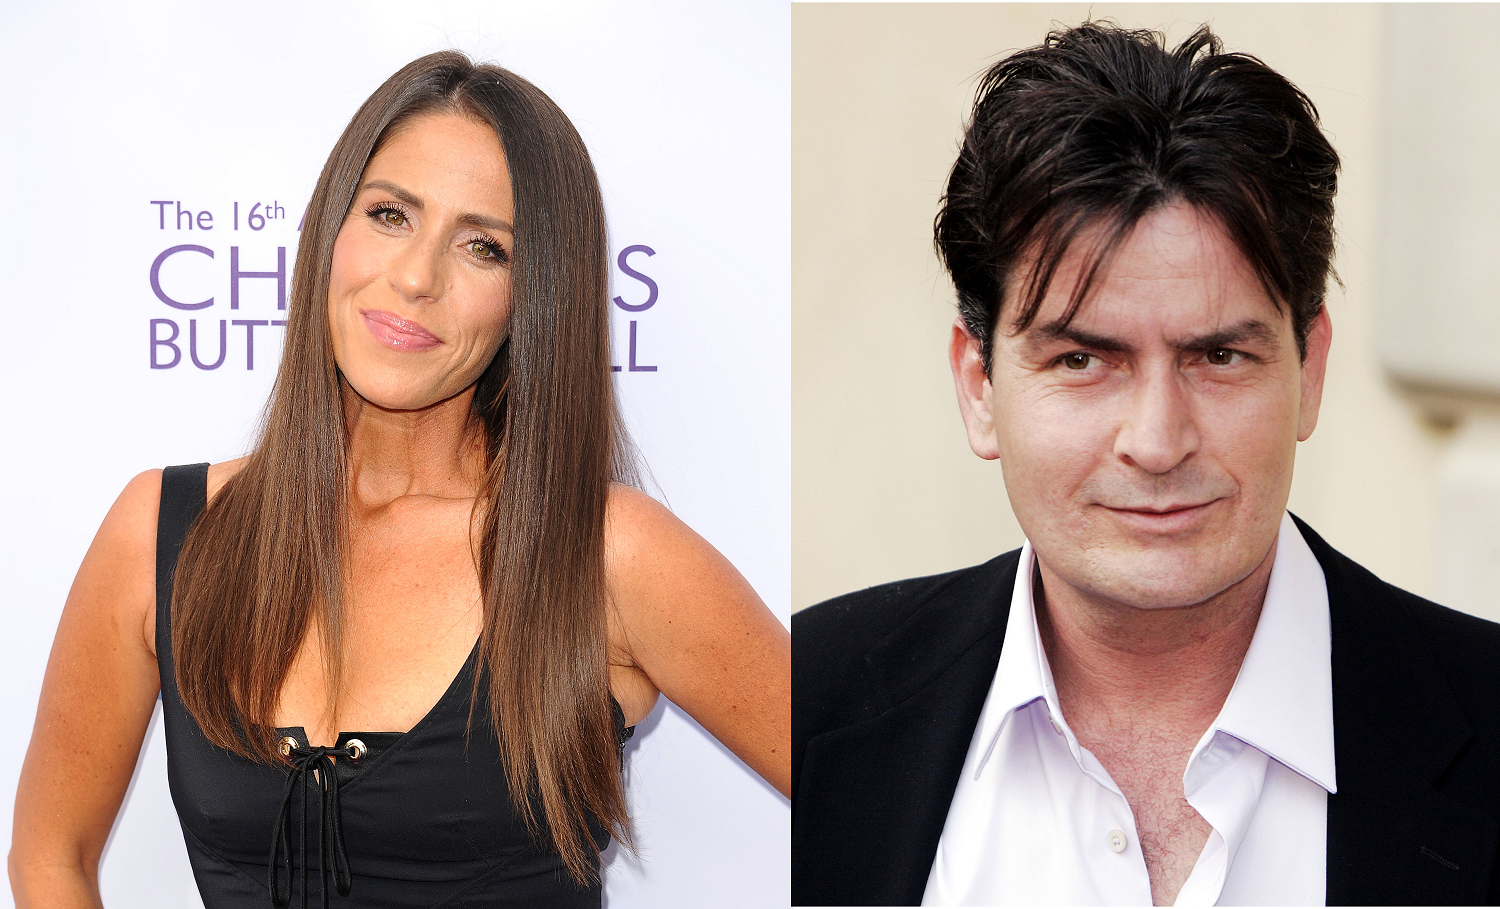 Soleil Moon Frye and Charlie Sheen